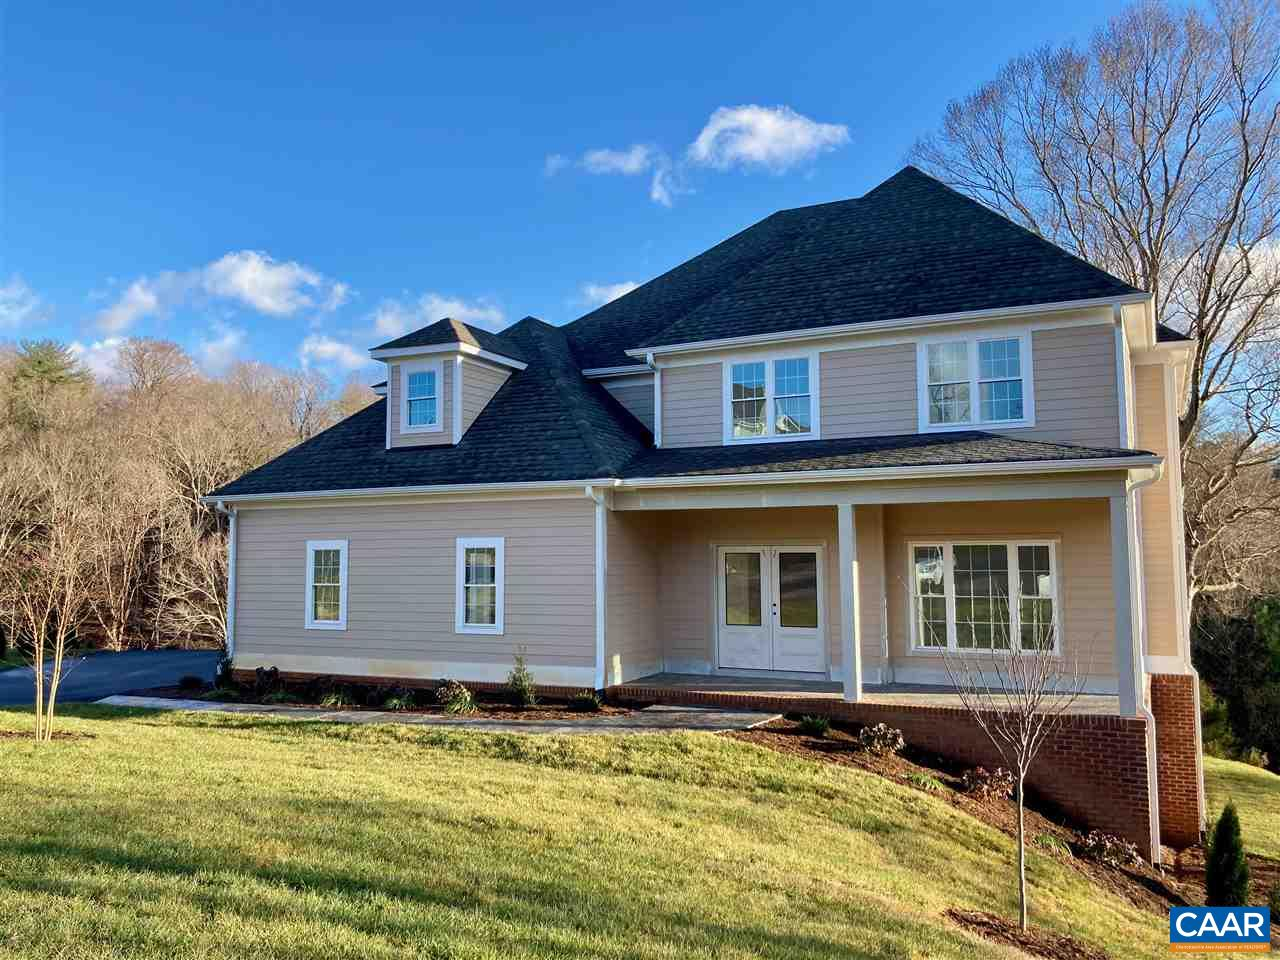 Another new offering in Foxchase Landing! New construction in Crozet, with *preserved trees* surrounding the neighborhood! 15 min to C'ville, 4 min to Western Albemarle schools, 2 min to Harris Teeter, and 7 min to one of Crozet's 3 coffee shops! This new custom home on a cul-de-sac offers large 1st floor master suite, wide open kitchen w/ breakfast area that opens to family room, open to loft, hardwood floors throughout main level, large deck & screened porch off the kitchen & great room. Upstairs offers three bedrooms & Jack and Jill bath and an open loft. Full walkout basement! Southern Classic is a custom home builder dedicated to ensuring a home that fits you. 2x6 Construction & Superior Wall foundation.